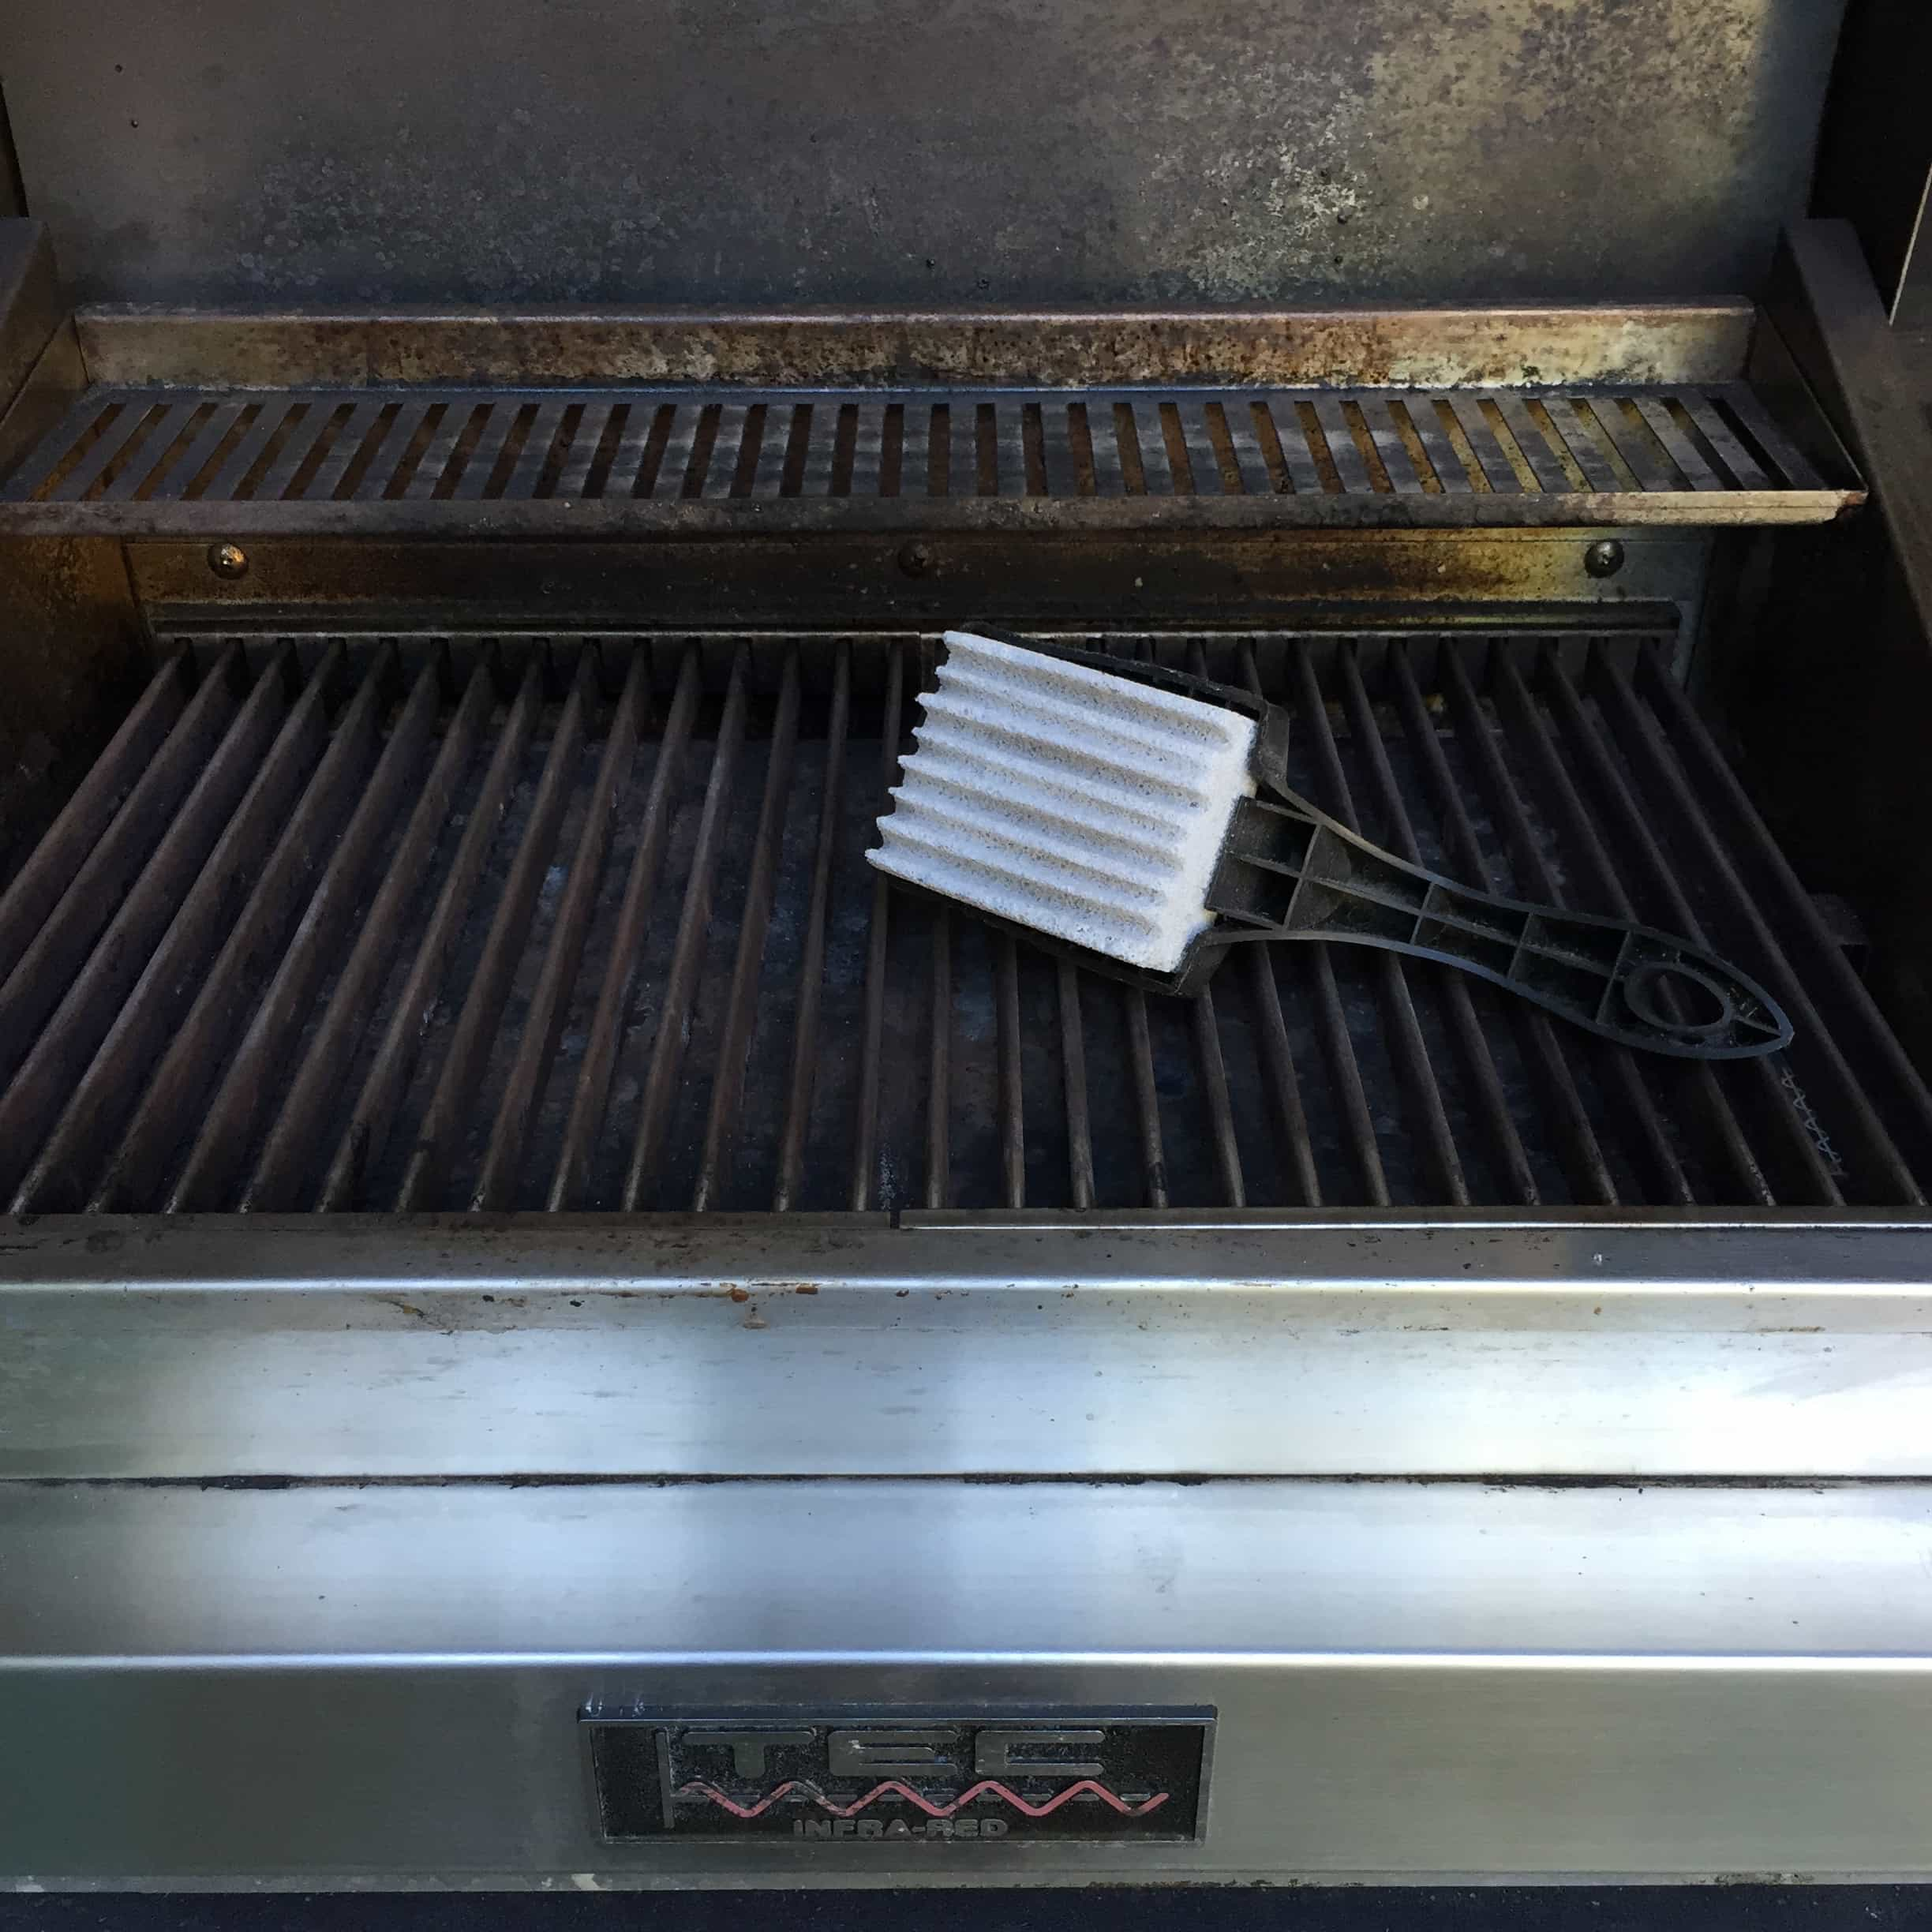 How to clean your tec grill tec infrared grills grill stoneg dailygadgetfo Image collections